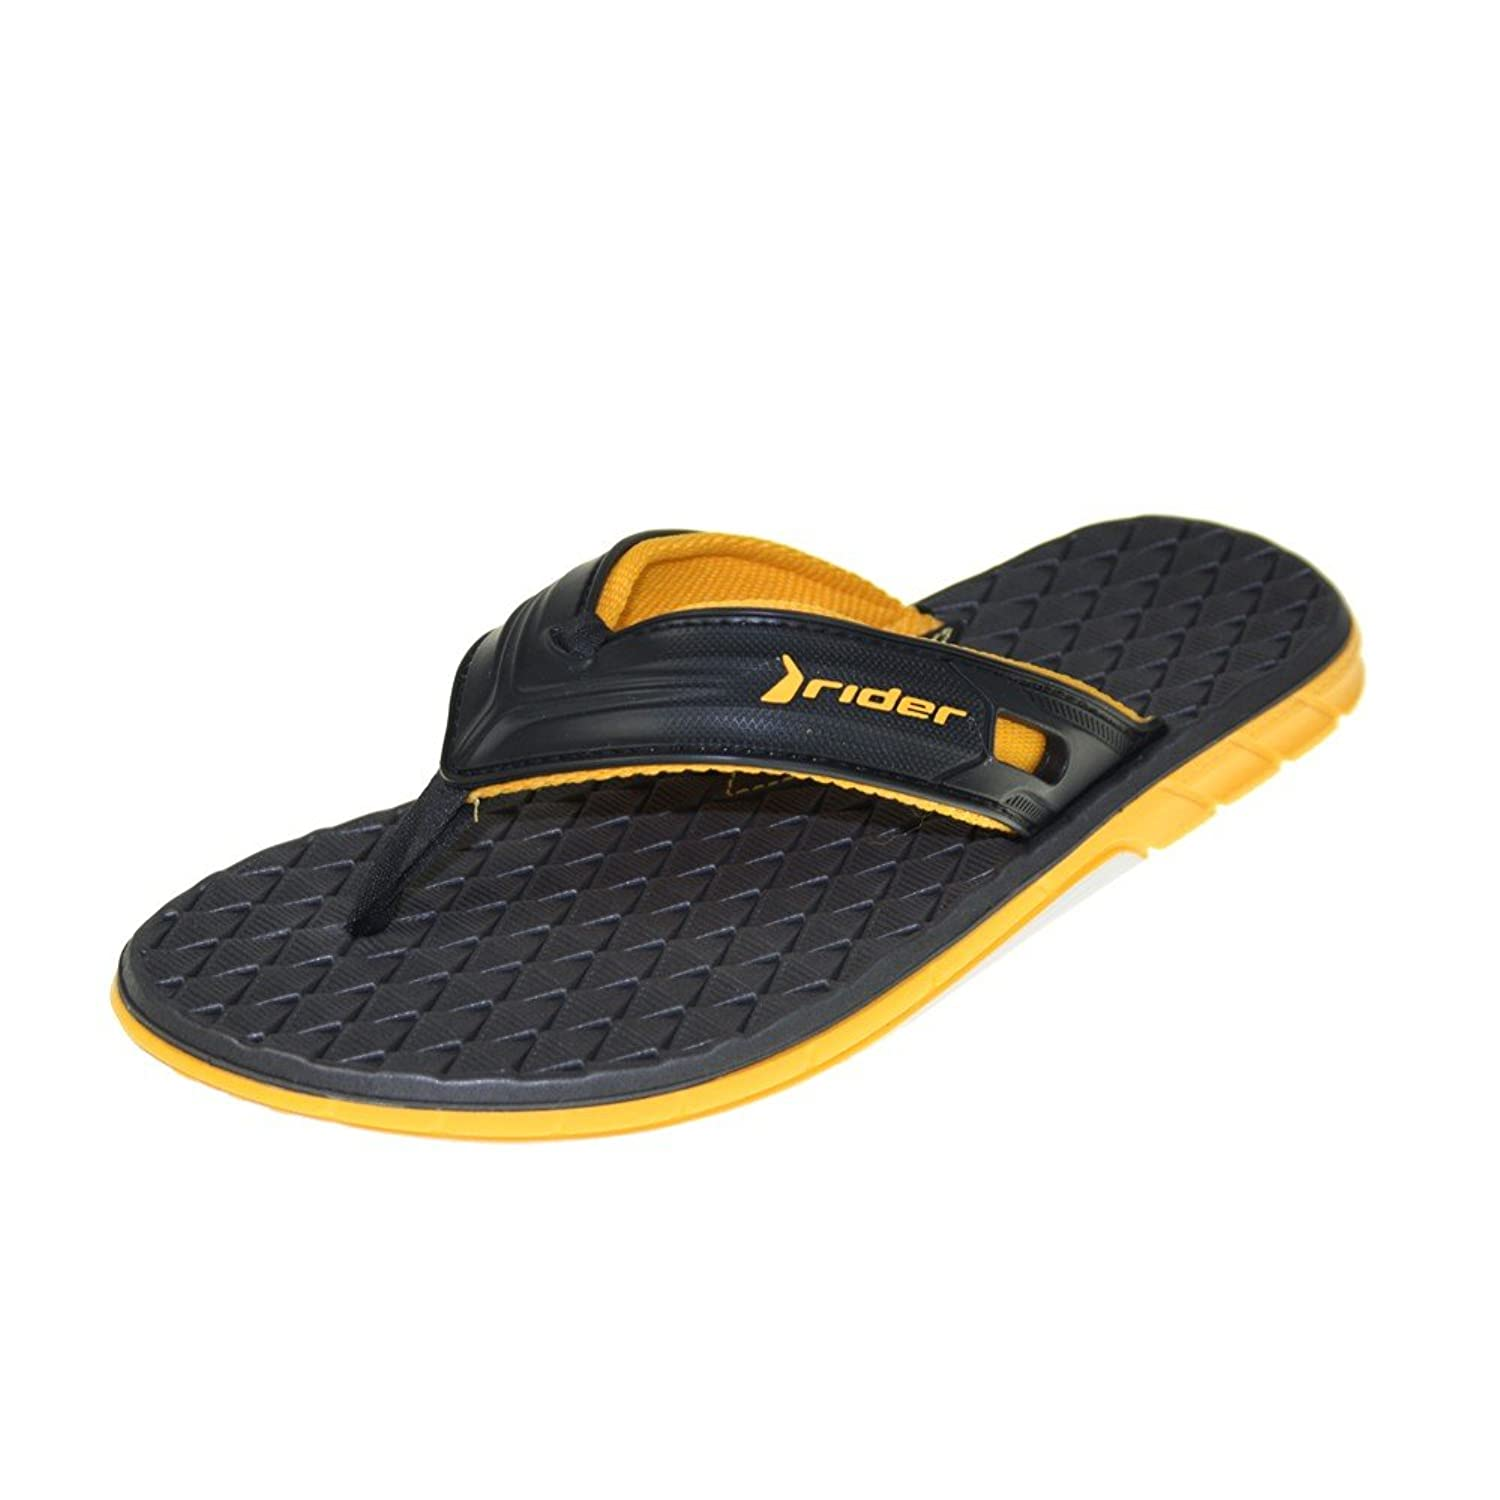 RIDER - Sandals RIDER NEXT AD - 81548 - yellow black, Size:43:  Amazon.co.uk: Shoes & Bags